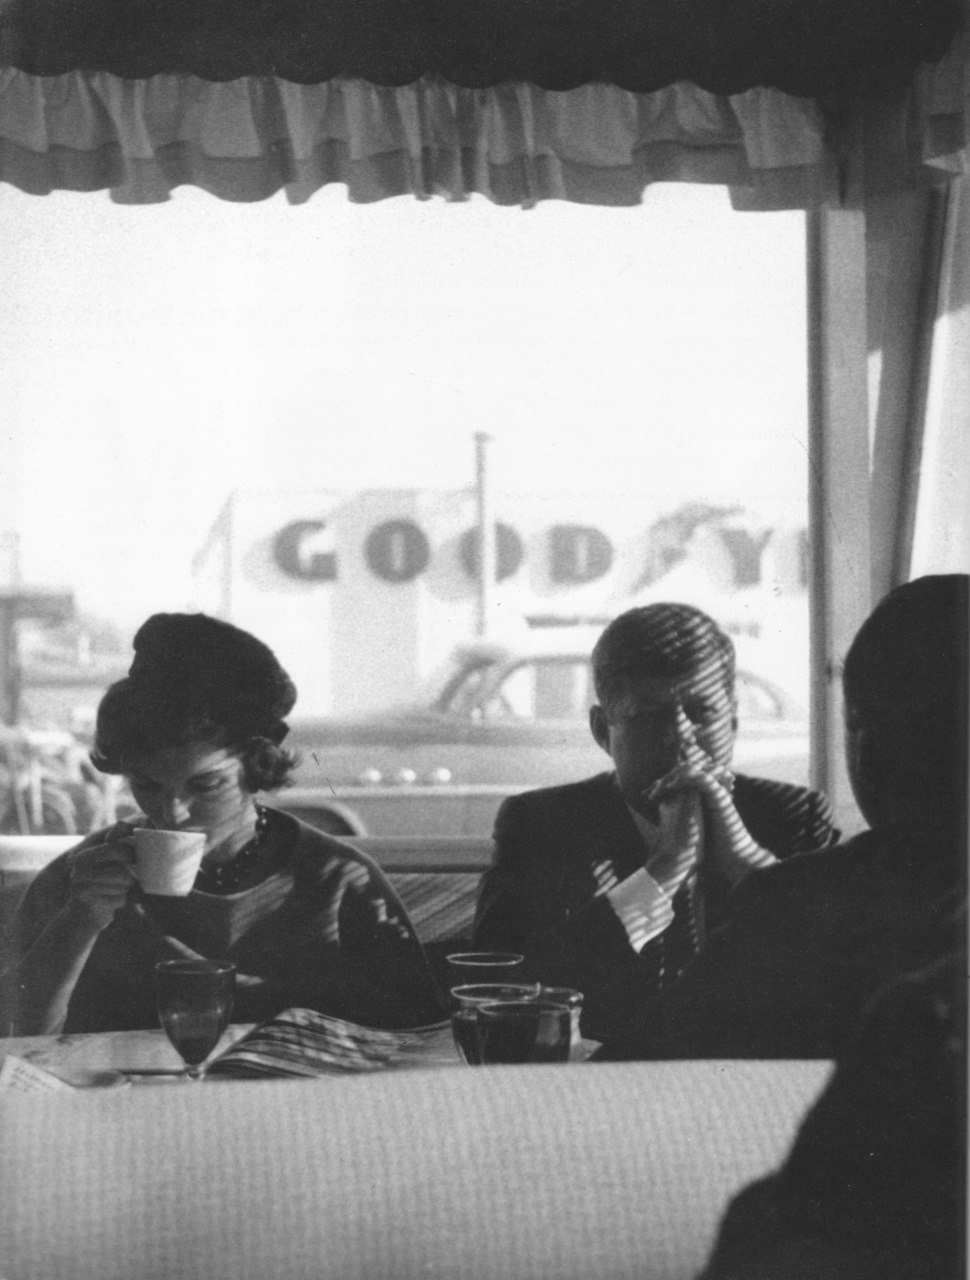 John F. Kennedy and Jackie in a diner. Oregon, 1959. By Jacques Lowe